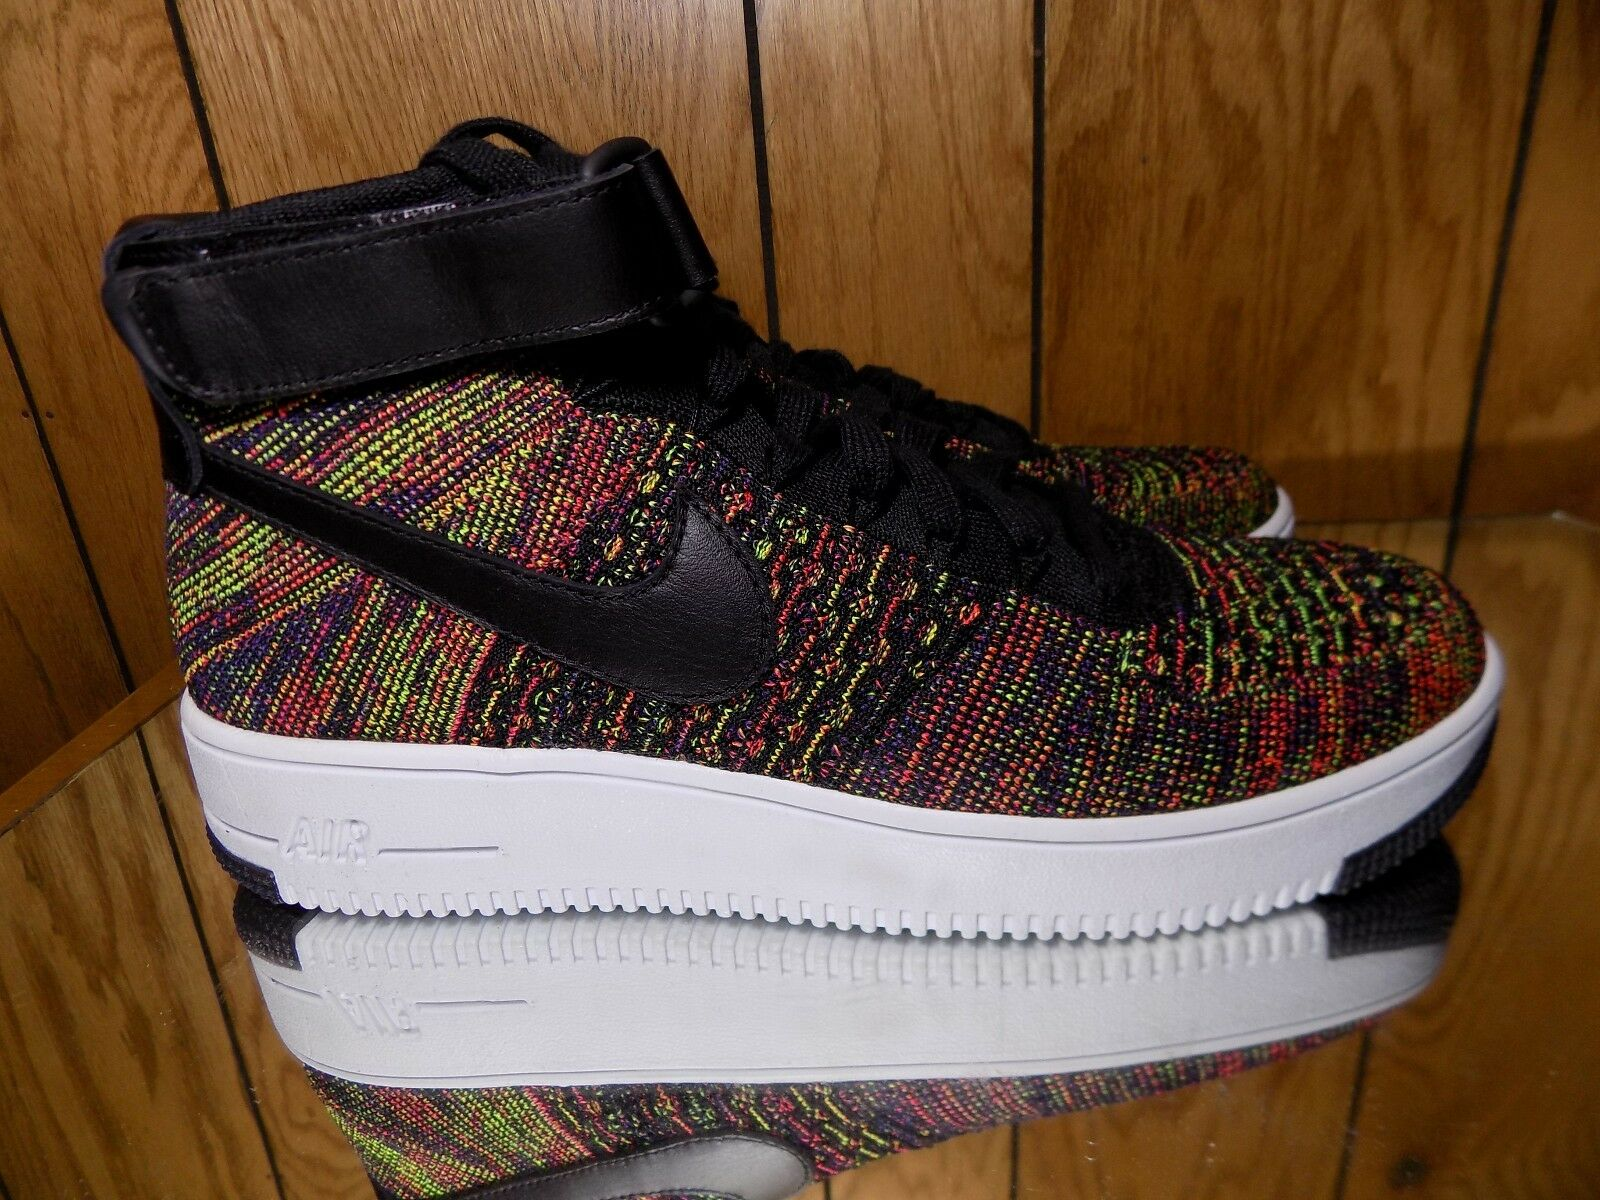 Mens Nike AIR FORCE 1 ULTRA FLYKNIT MID Shoes Shoes Shoes -Reg  175 -817420 002 -Sz 9.5 f0971a